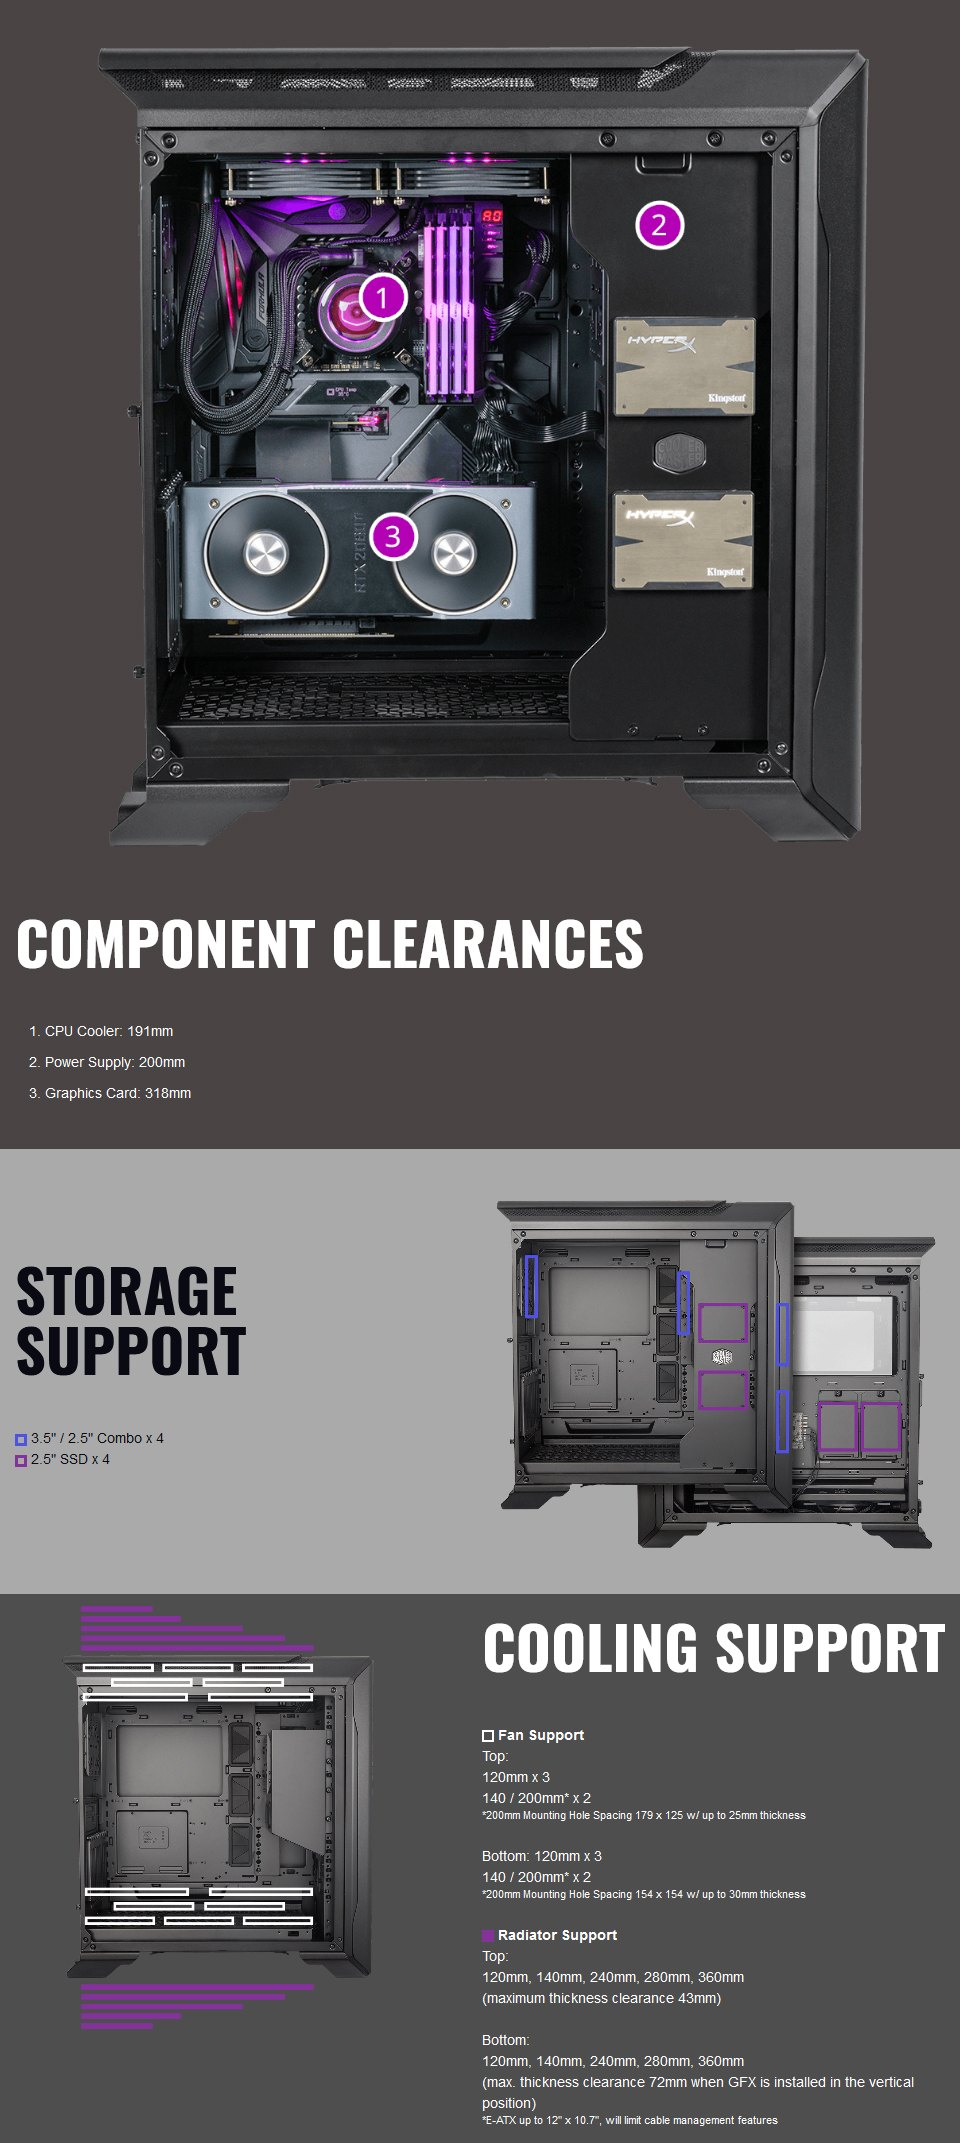 Cooler Master MasterCase SL600M Black Edition features 3